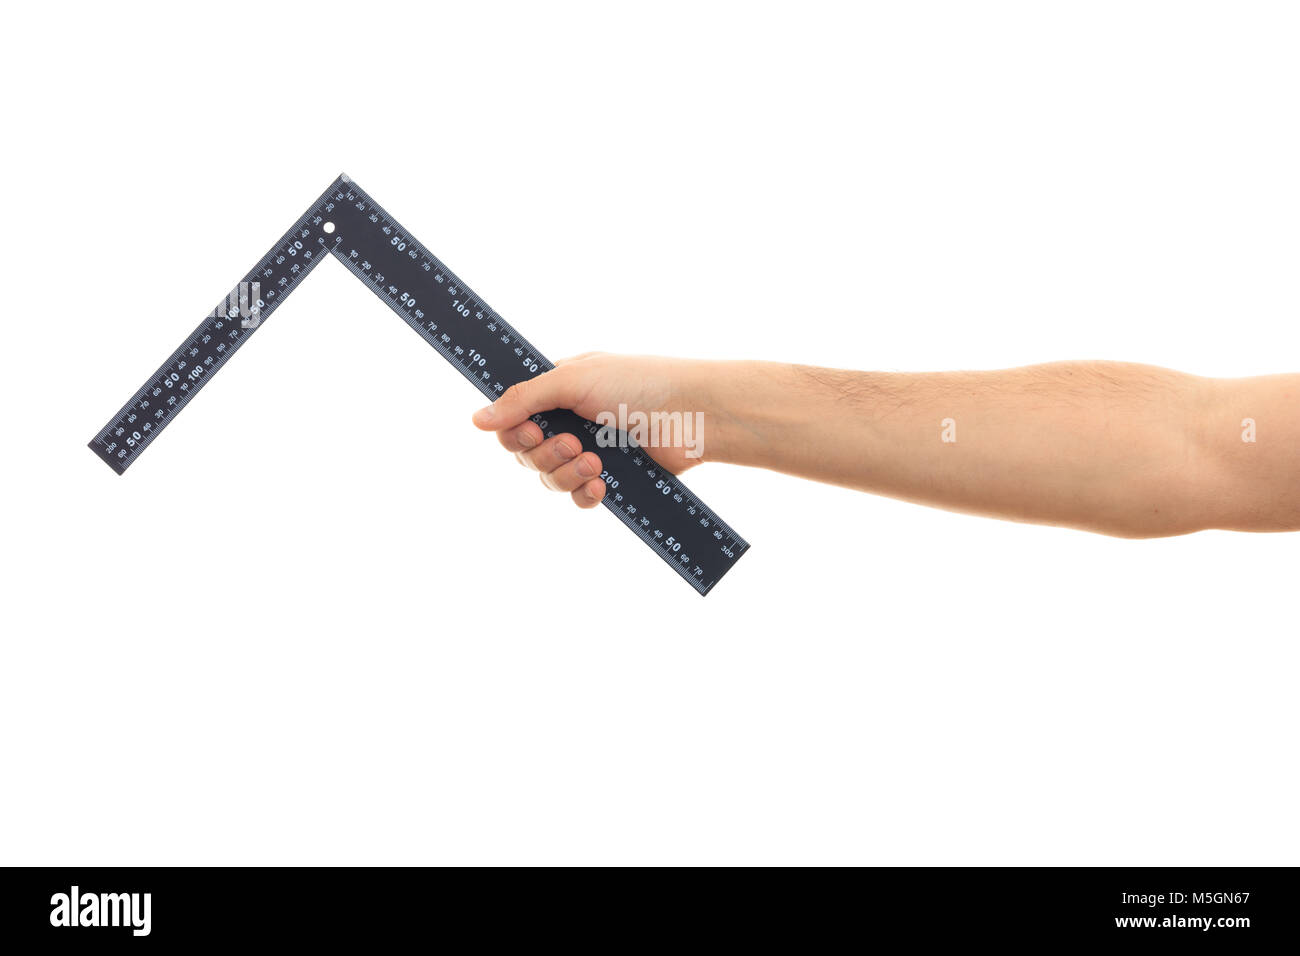 Carpenter ruler L shape. Hand holding an angle square ruler on white background Stock Photo